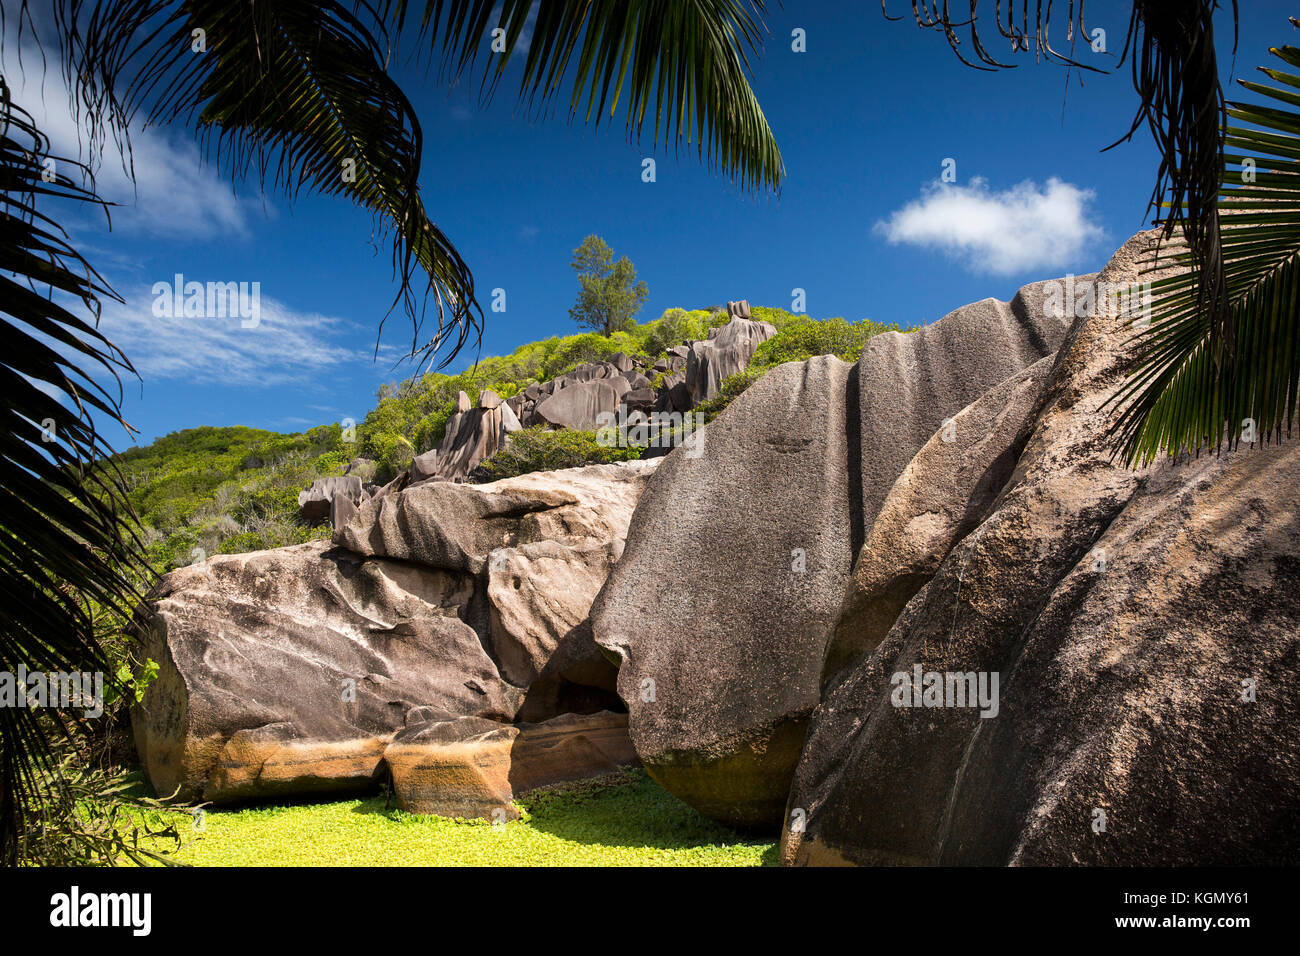 The Seychelles, La Digue, Grand Anse, eroded granite rock formation on hill behind beach - Stock Image